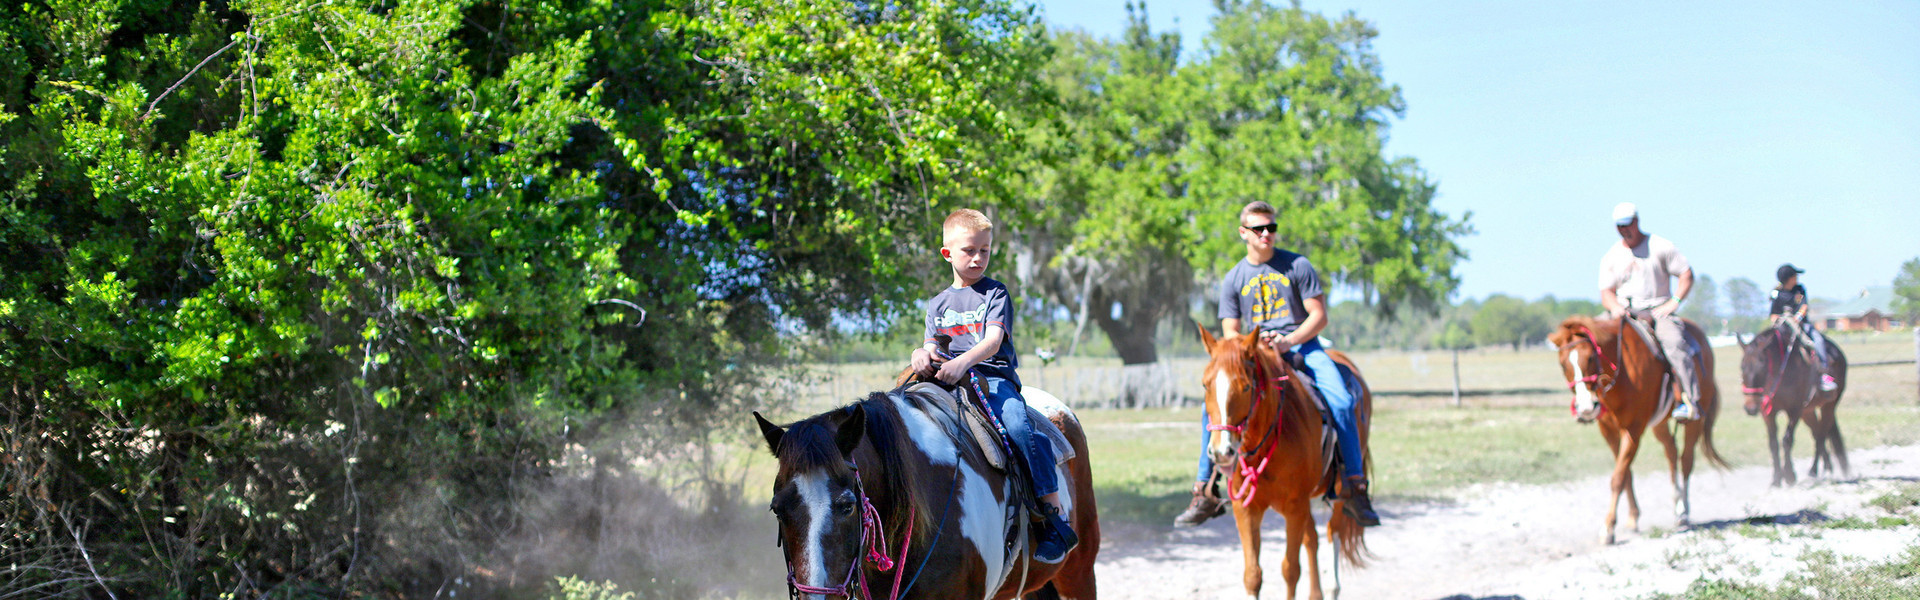 The largest dude ranch East of the Mississippi, Westgate River Ranch Resort & Rodeo in Florida features an amazing variety of outdoor activities including a rodeo, petting farm, bungee jumping, fishing, golf and so much more!